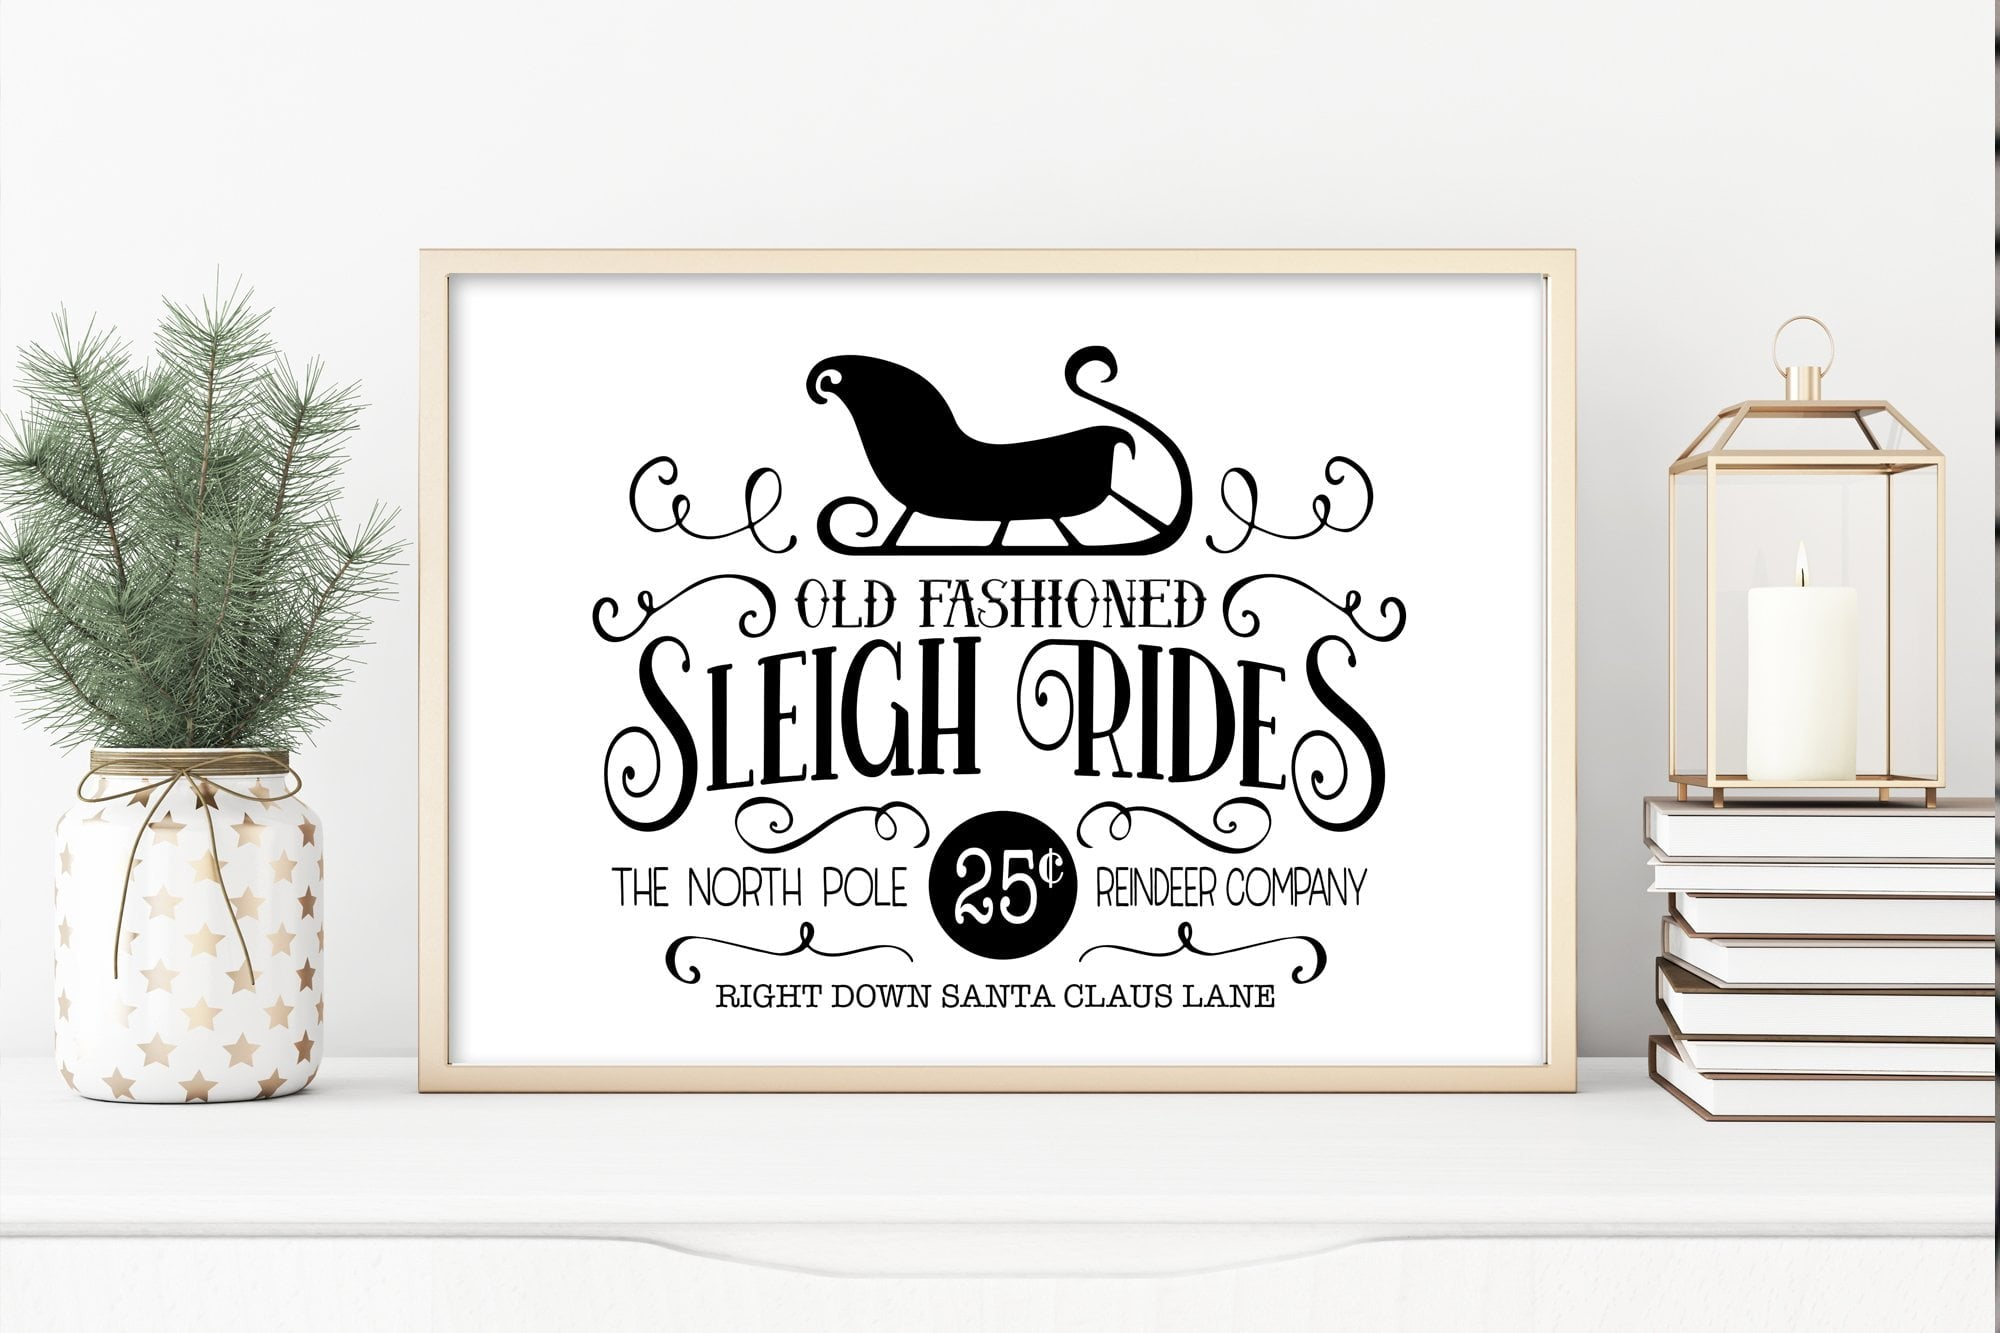 Wall Art For Christmas | Sleigh Rides Sign | Ollie + Hank